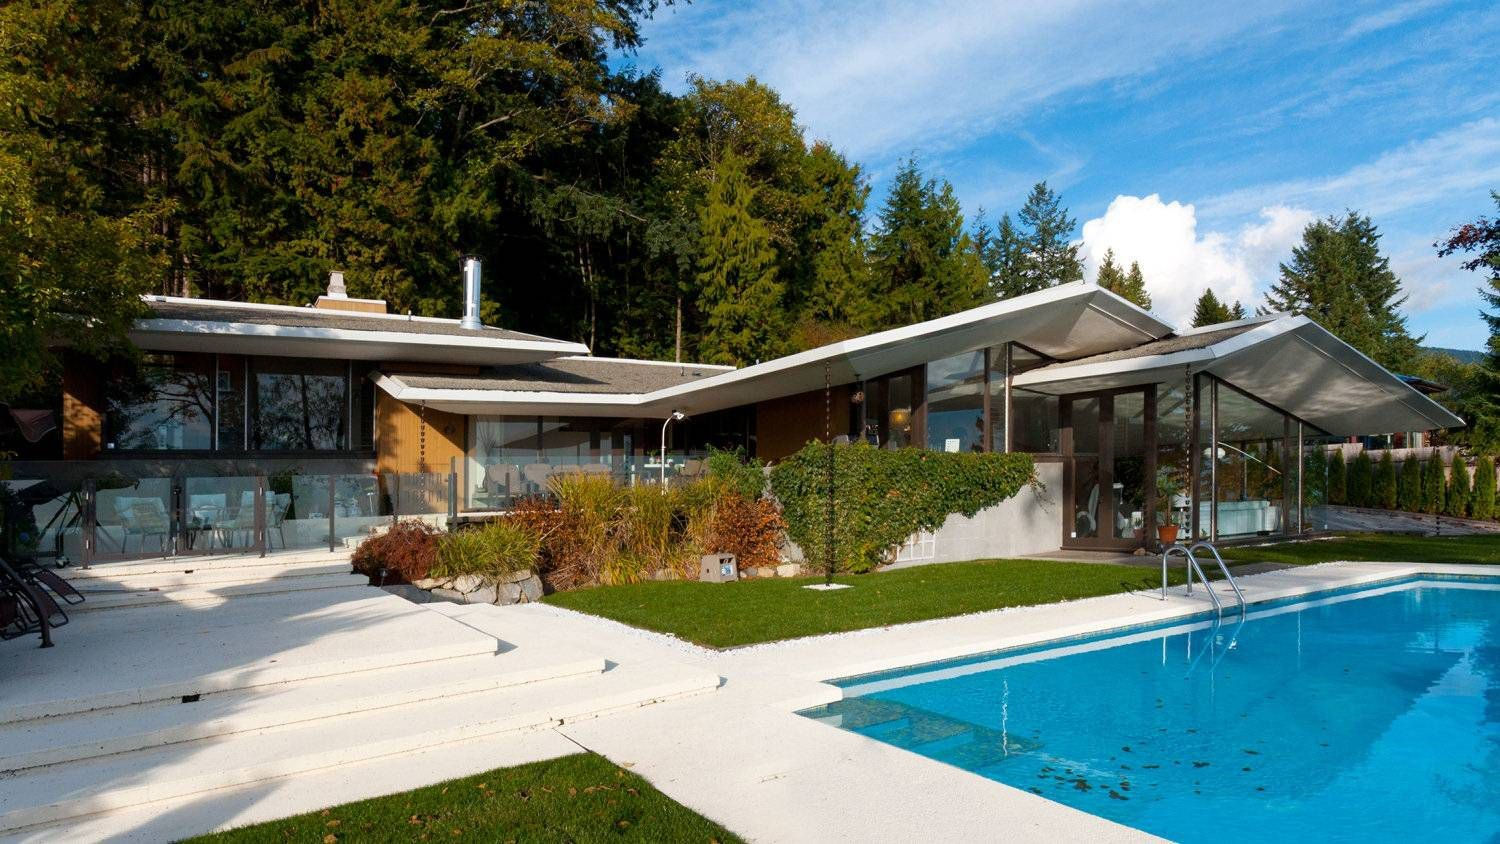 Ron Thom's 1962 Forrest House on Eyremount Drive in West Vancouver.